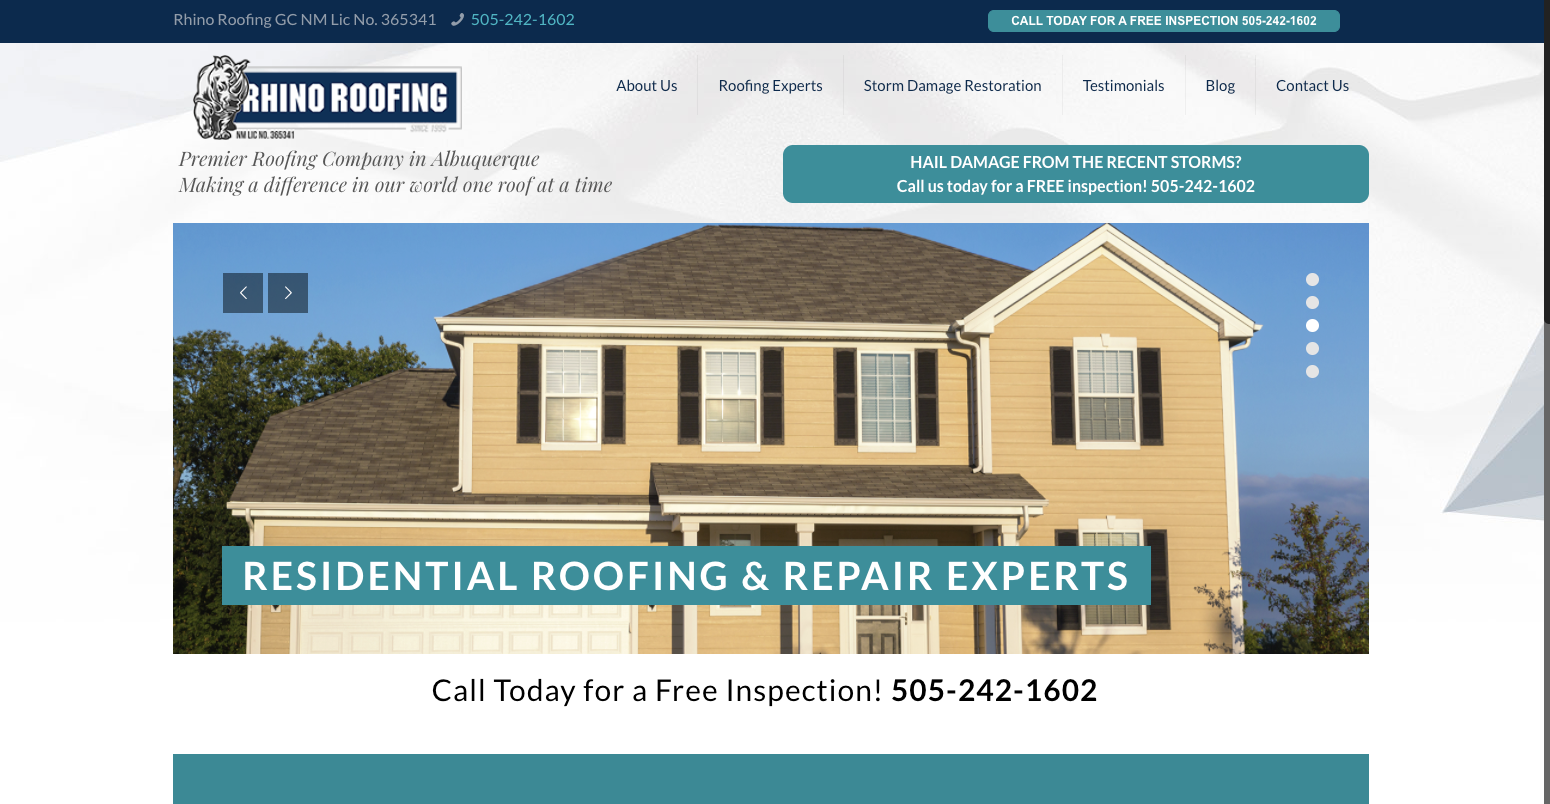 21 Top Roofers In Albuquerque New Mexico Innovative Building Materials